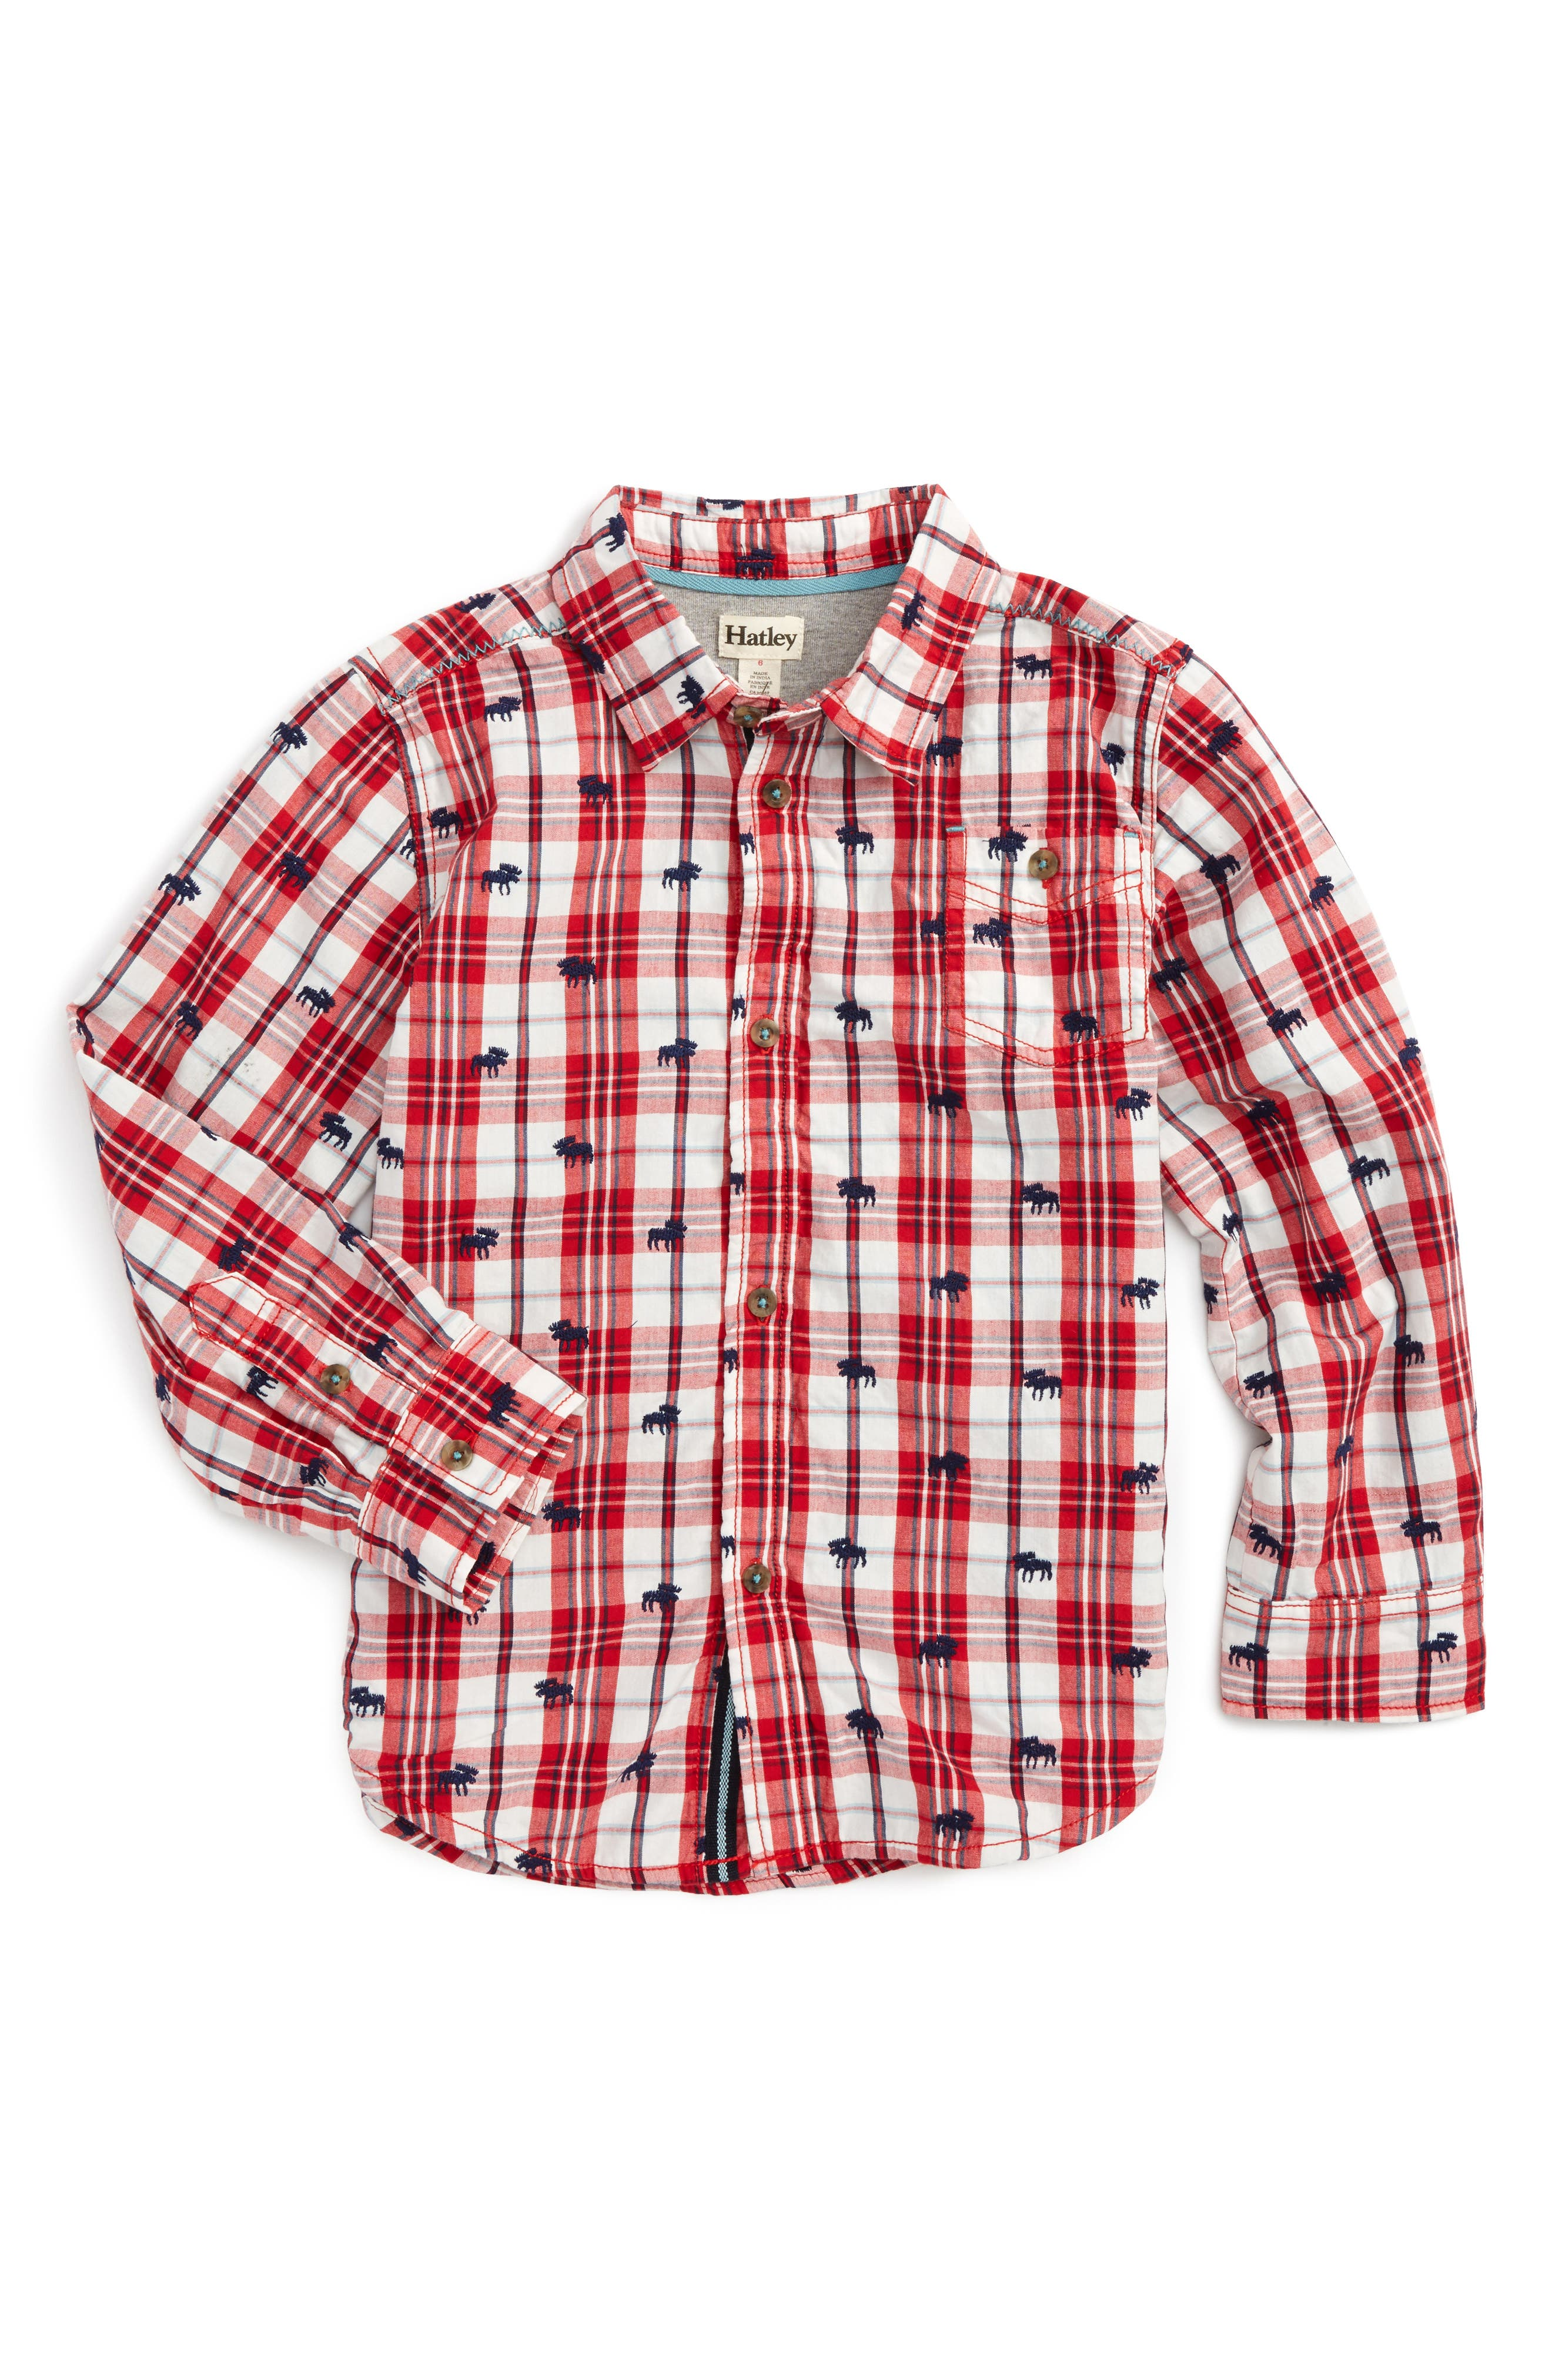 Alternate Image 1 Selected - Hatley Embroidered Plaid Shirt (Toddler Boys, Little Boys & Big Boys)